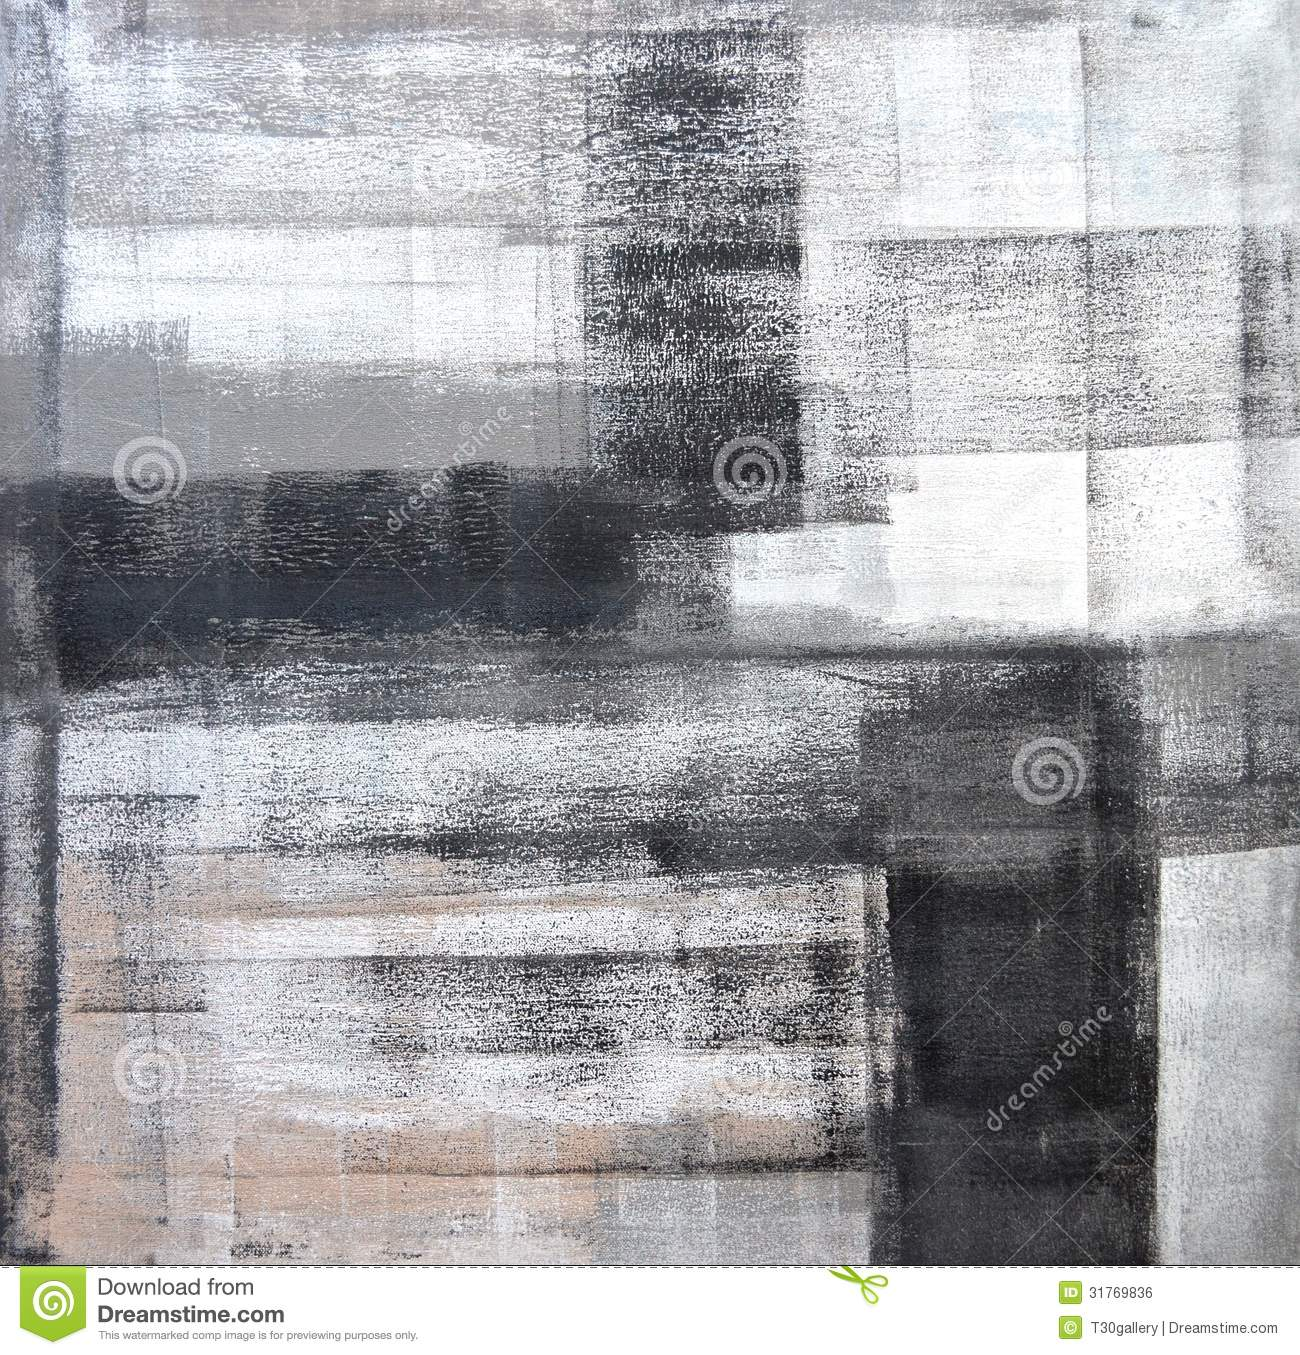 Black White And Gray Paintings Grey And Black Abstract Art Painting Royalty Free Stock